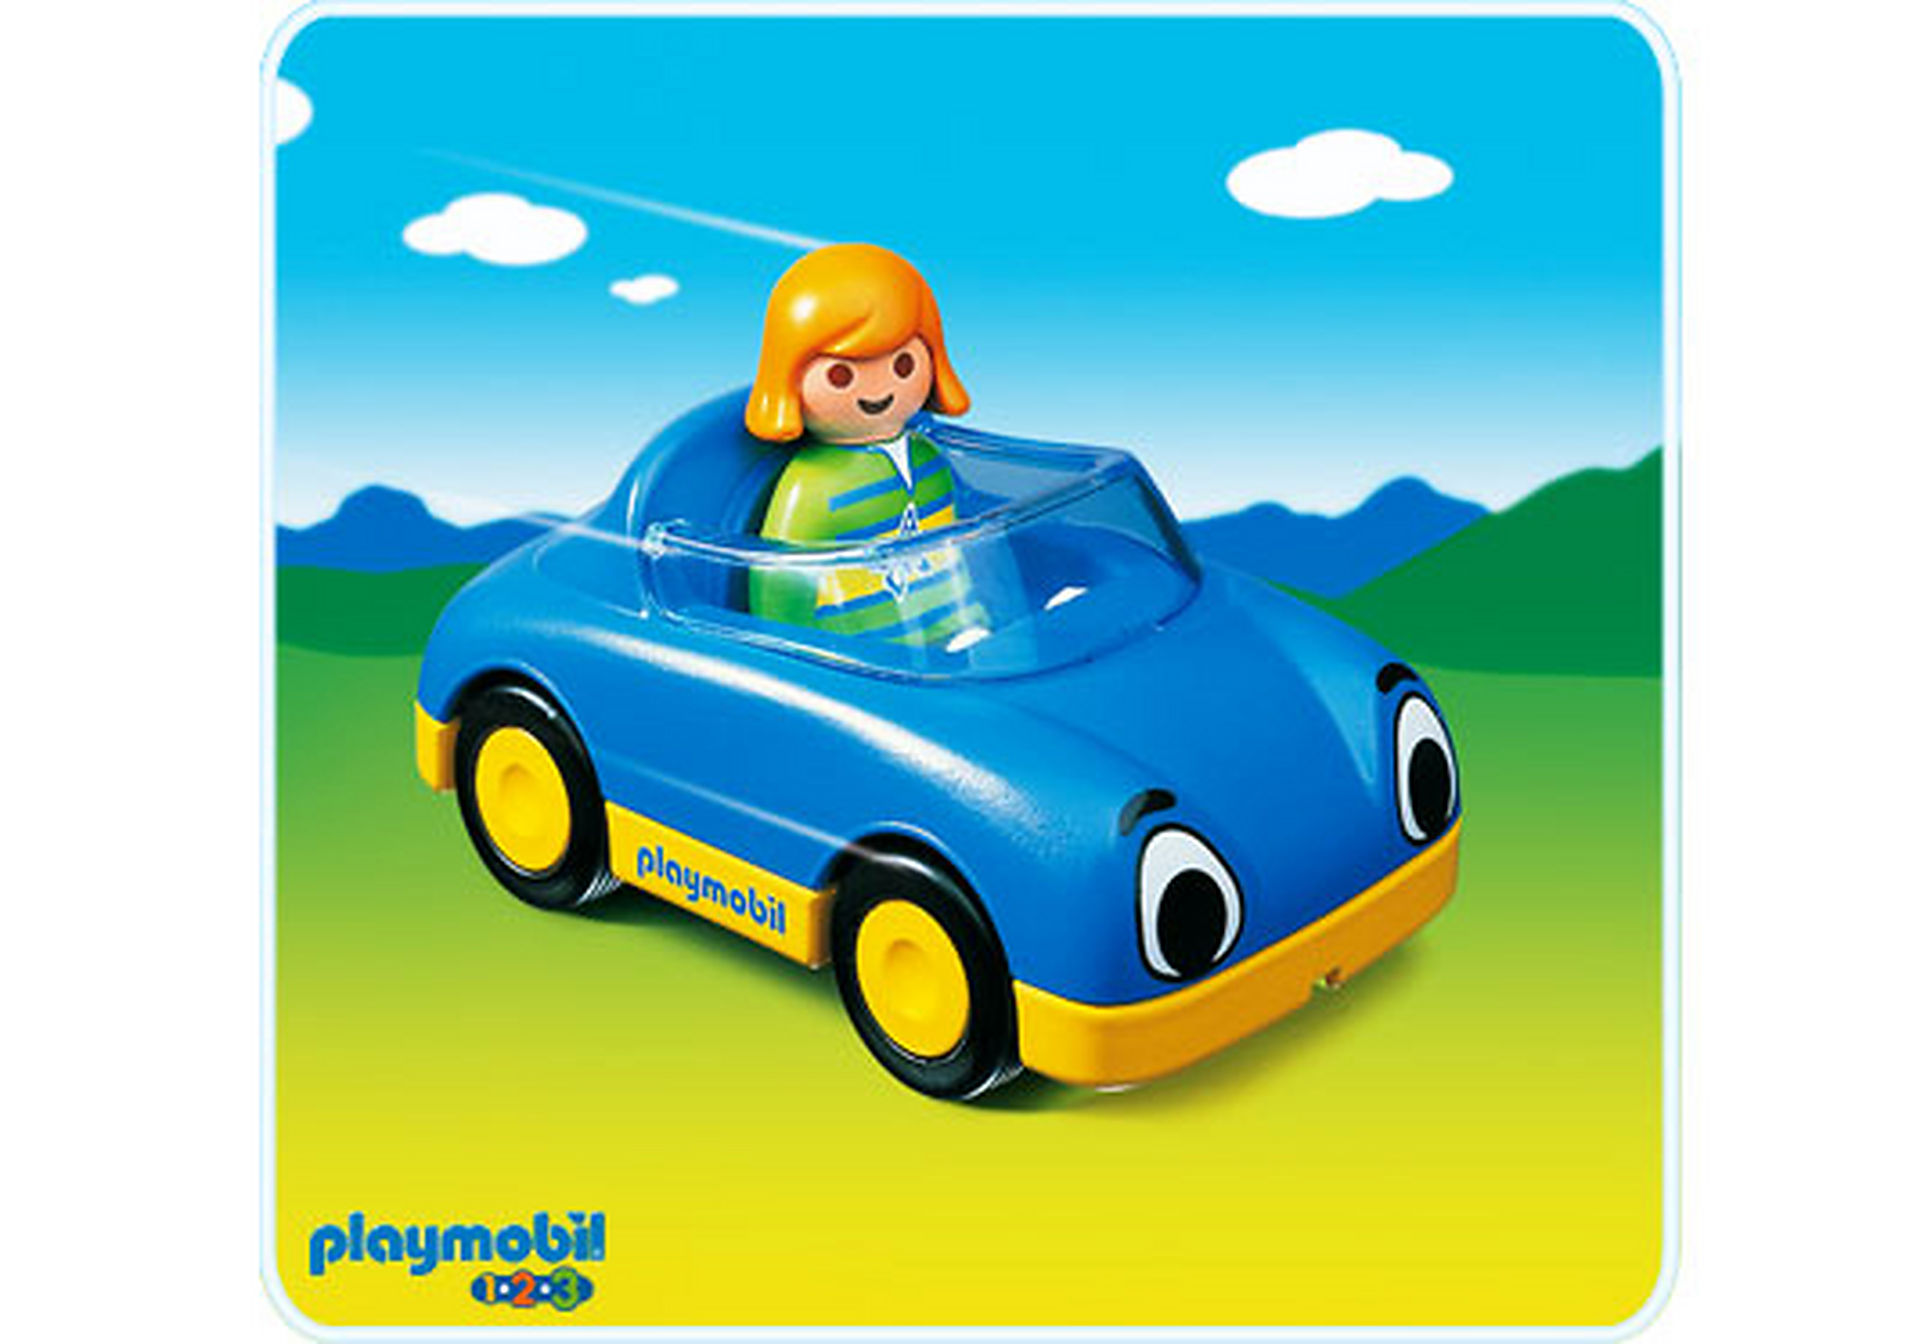 http://media.playmobil.com/i/playmobil/6758-A_product_detail/Cabrio